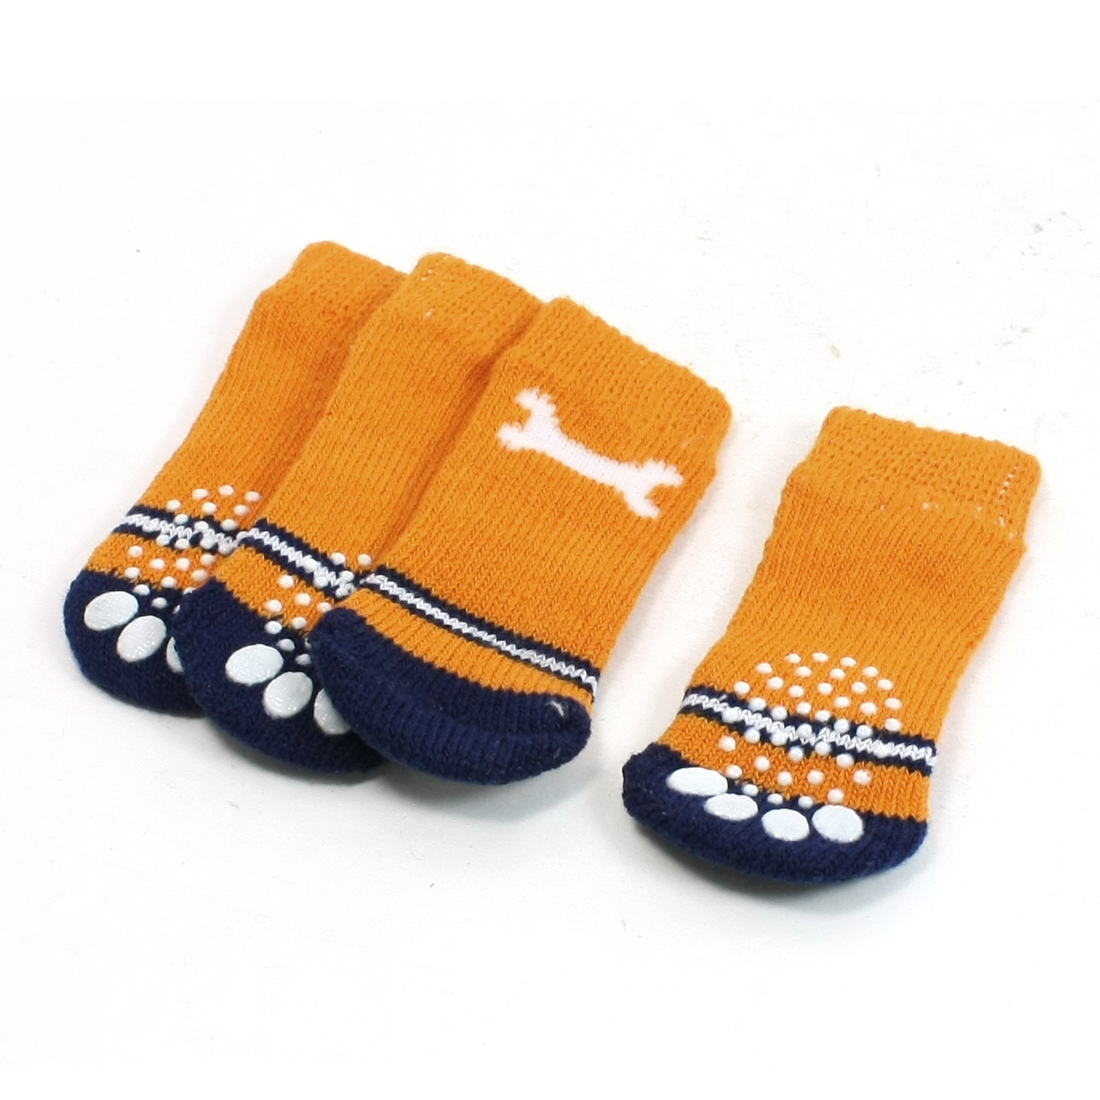 2 Pairs Bone Paw Print Elastic Knitted Pet Dog Yorkie Socks Orange Size M